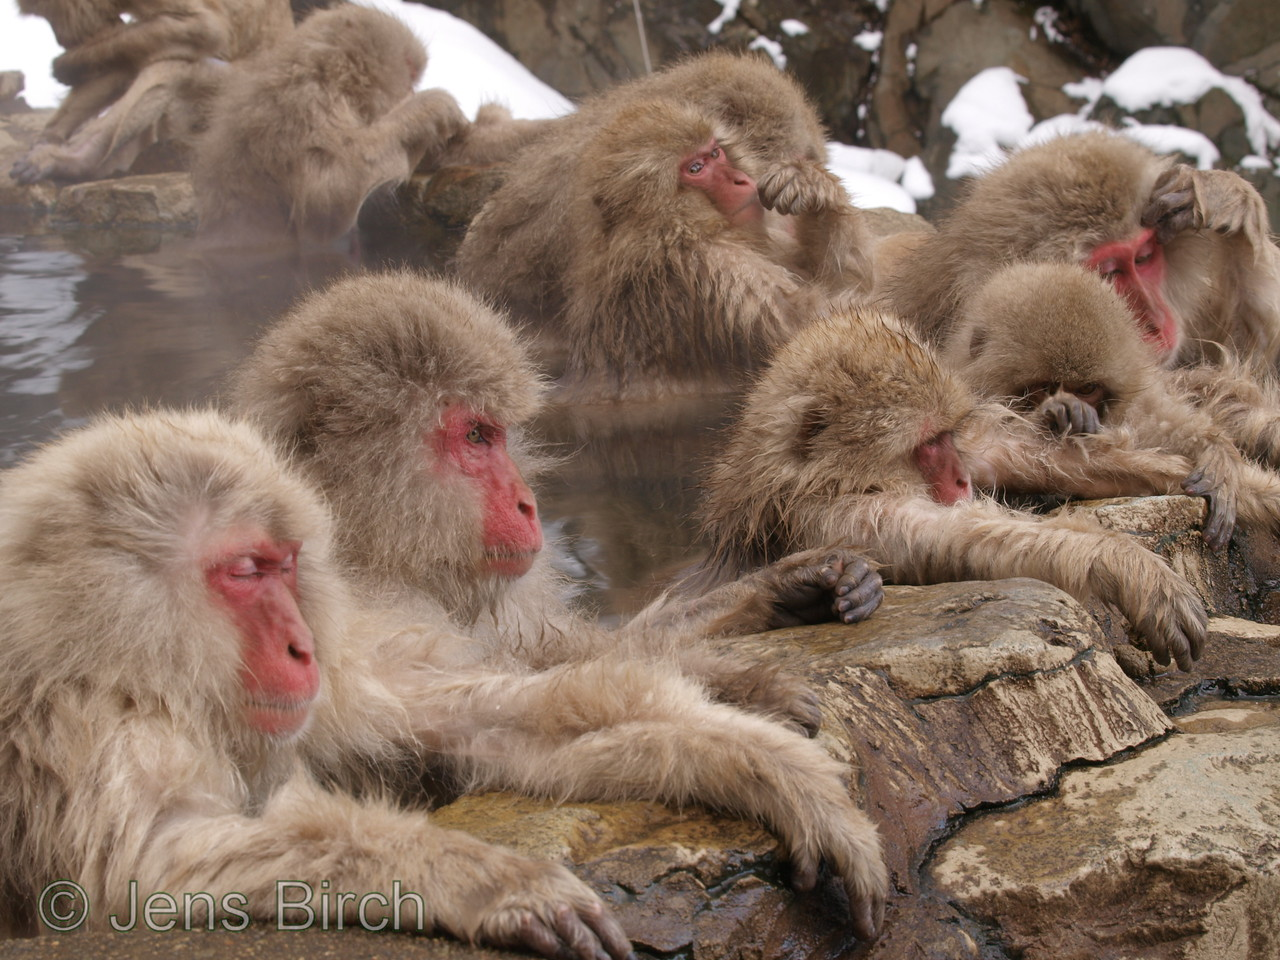 Just 20-30 of the macaques (out of about 200) are allowed in the pool.